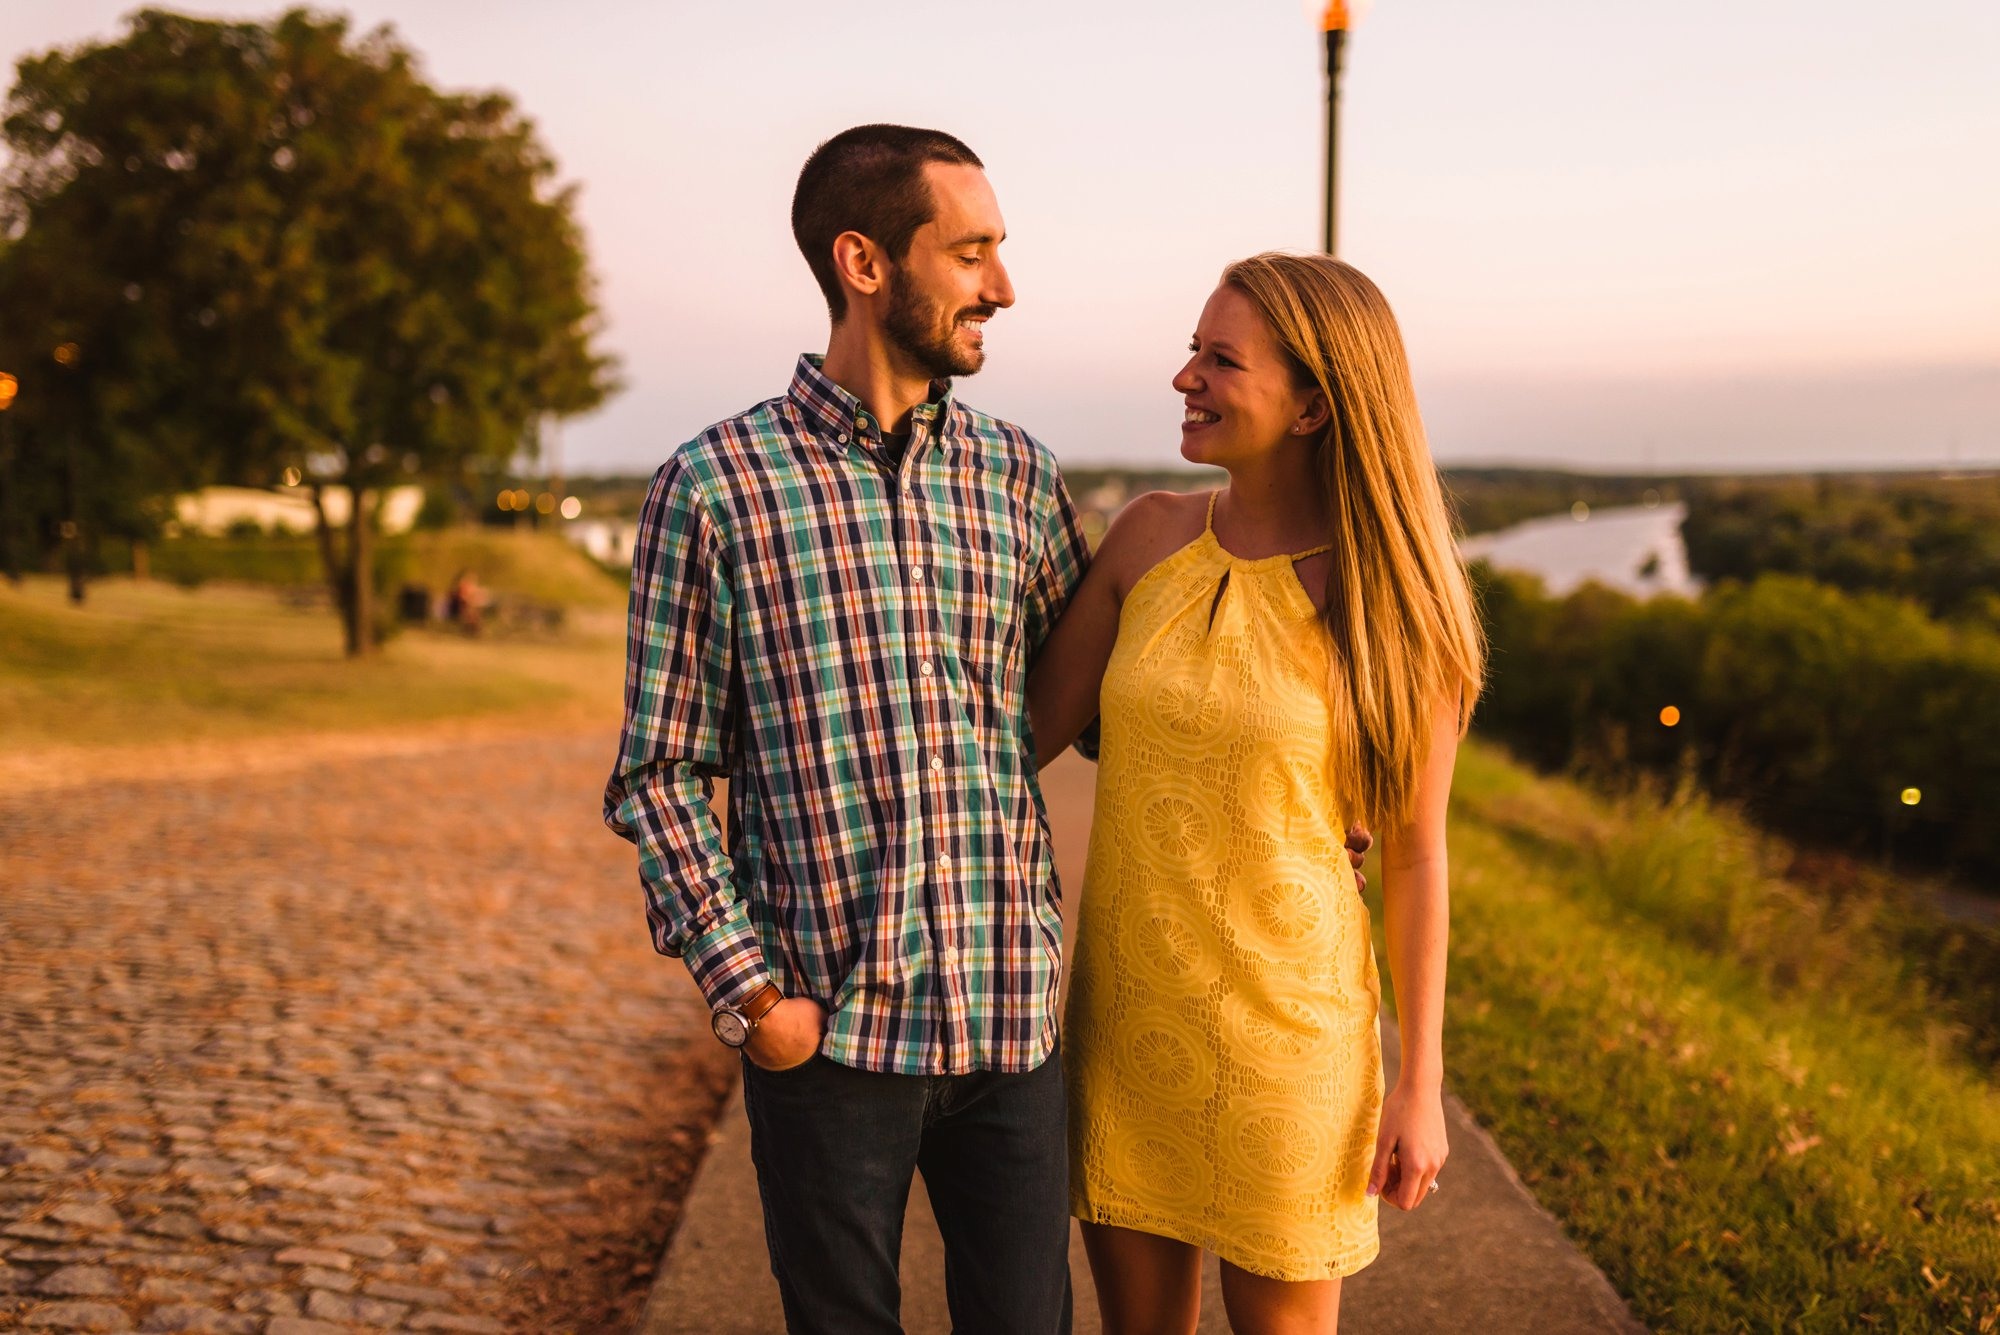 engagement-photography-88-love-stories-20.jpg